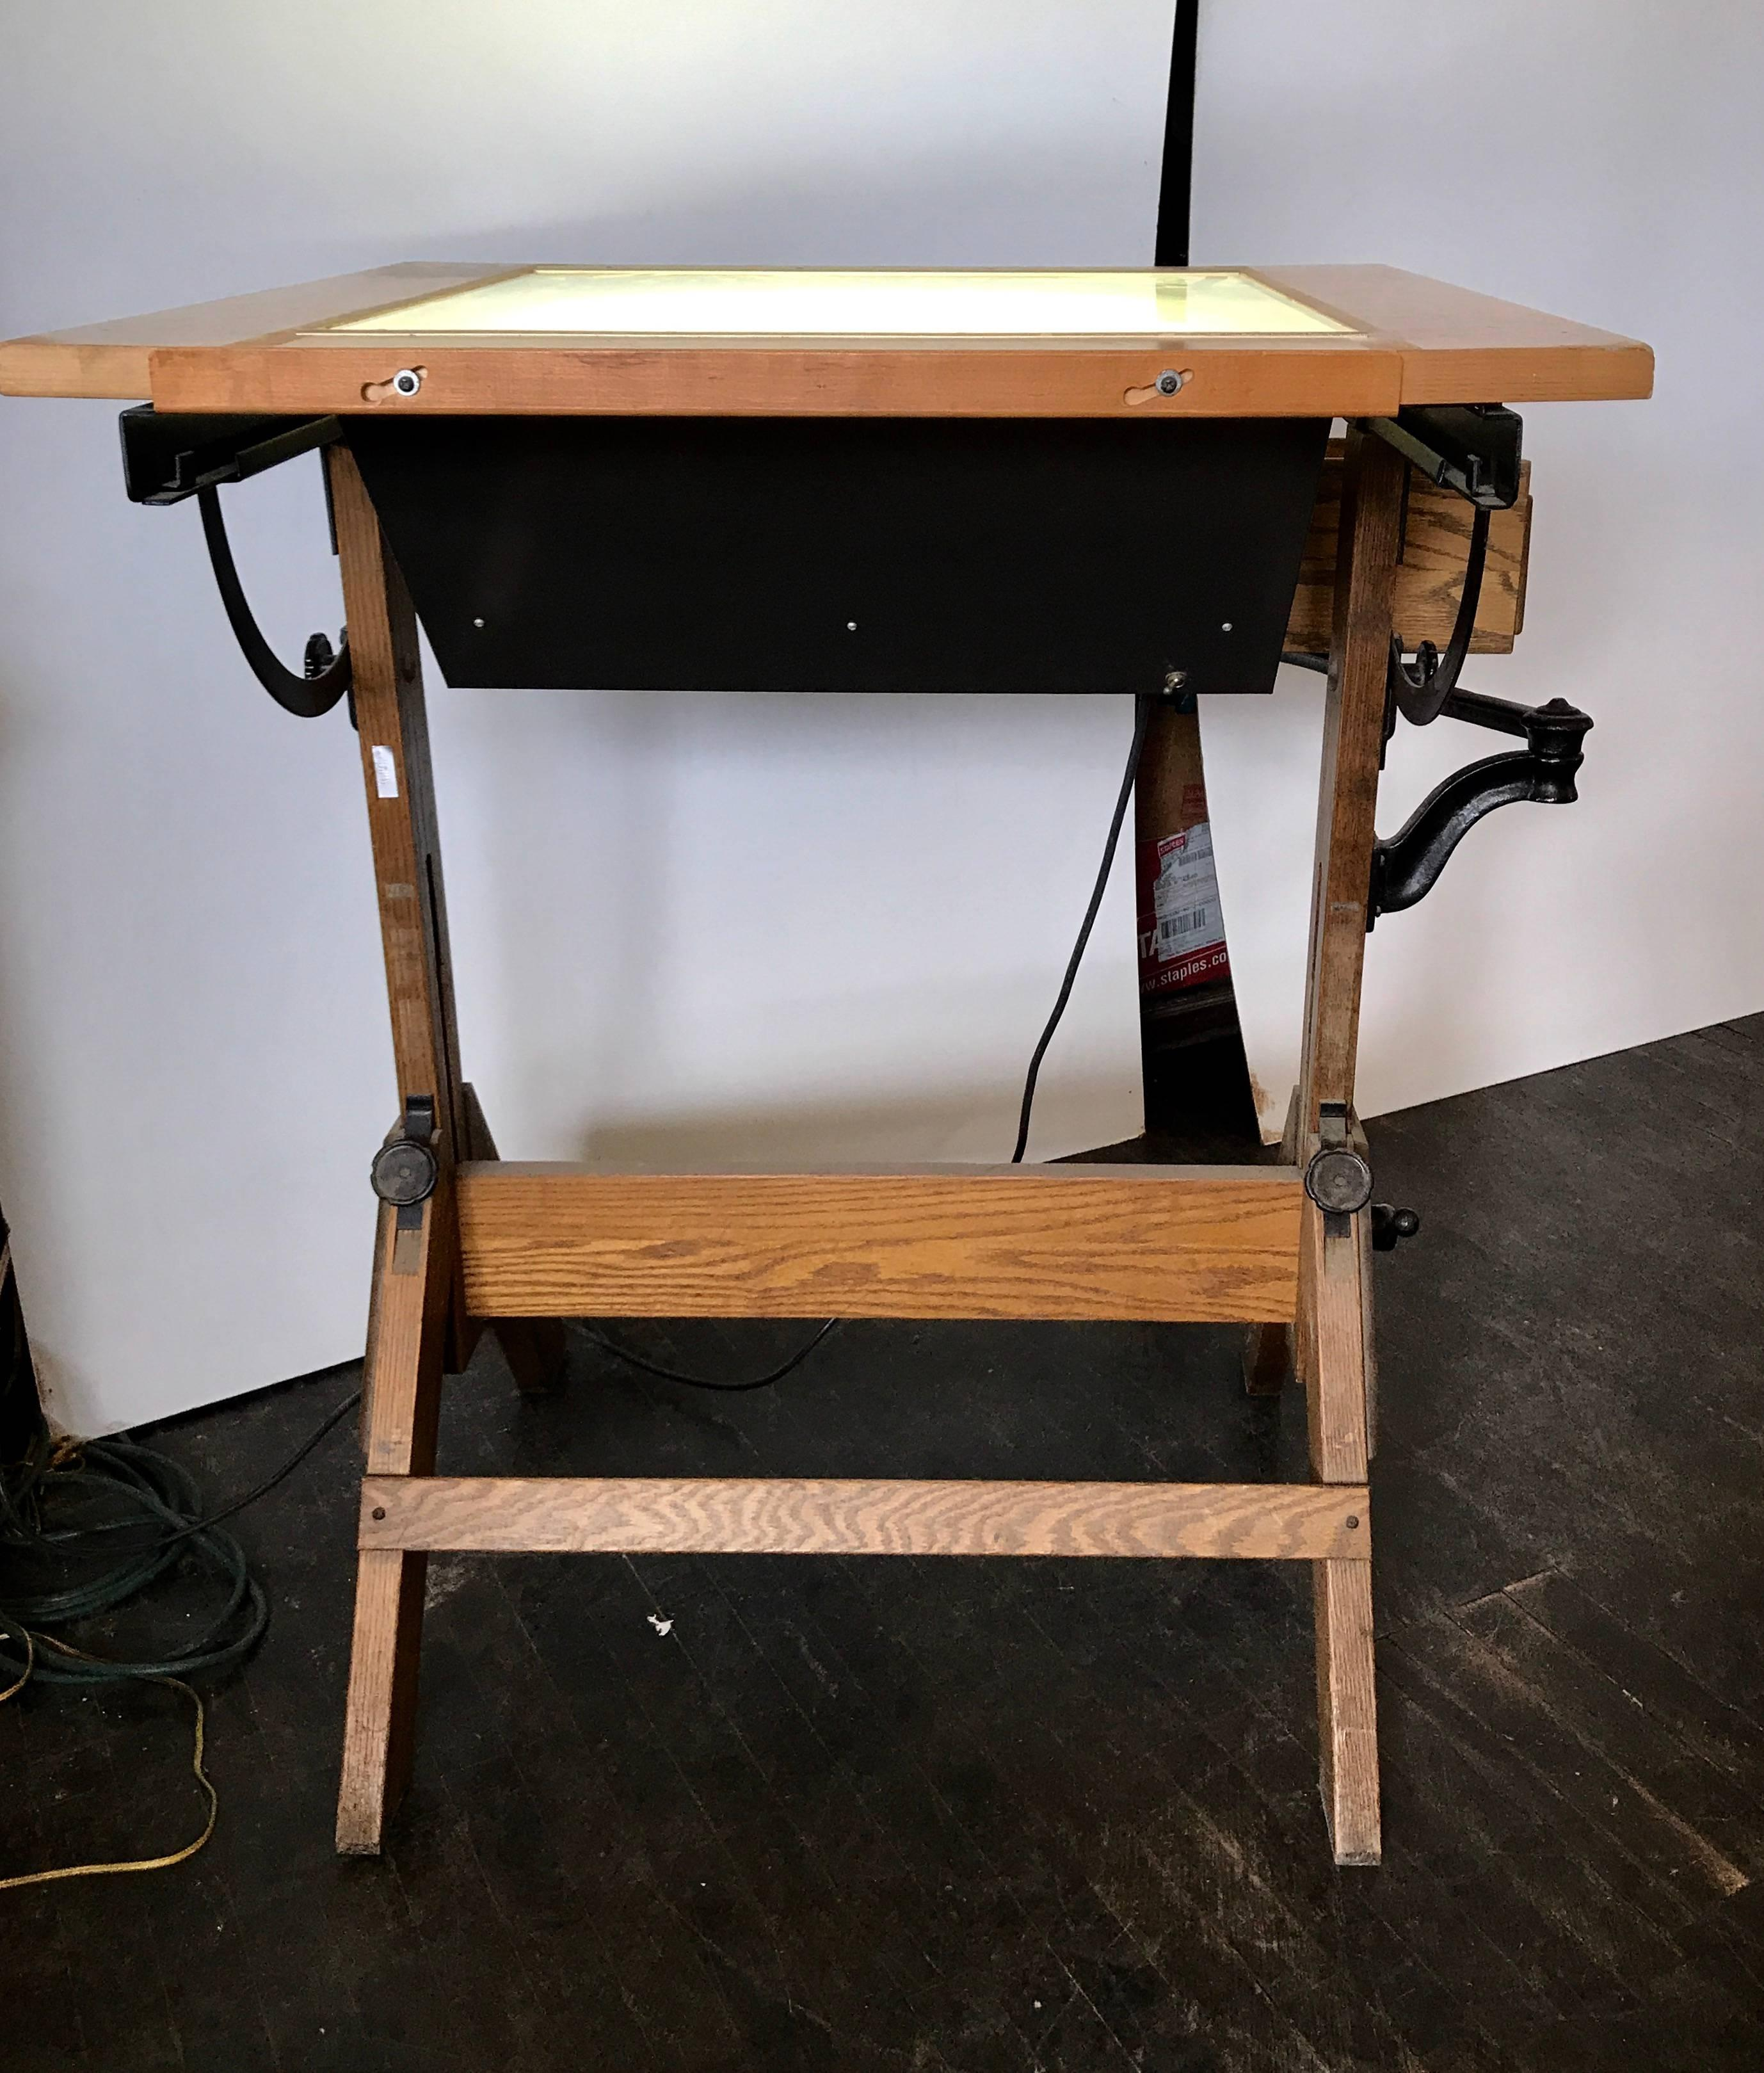 lightbox iron master f and drafting drawer cast hamilton table id img industrial antique furniture rare work at oak tables